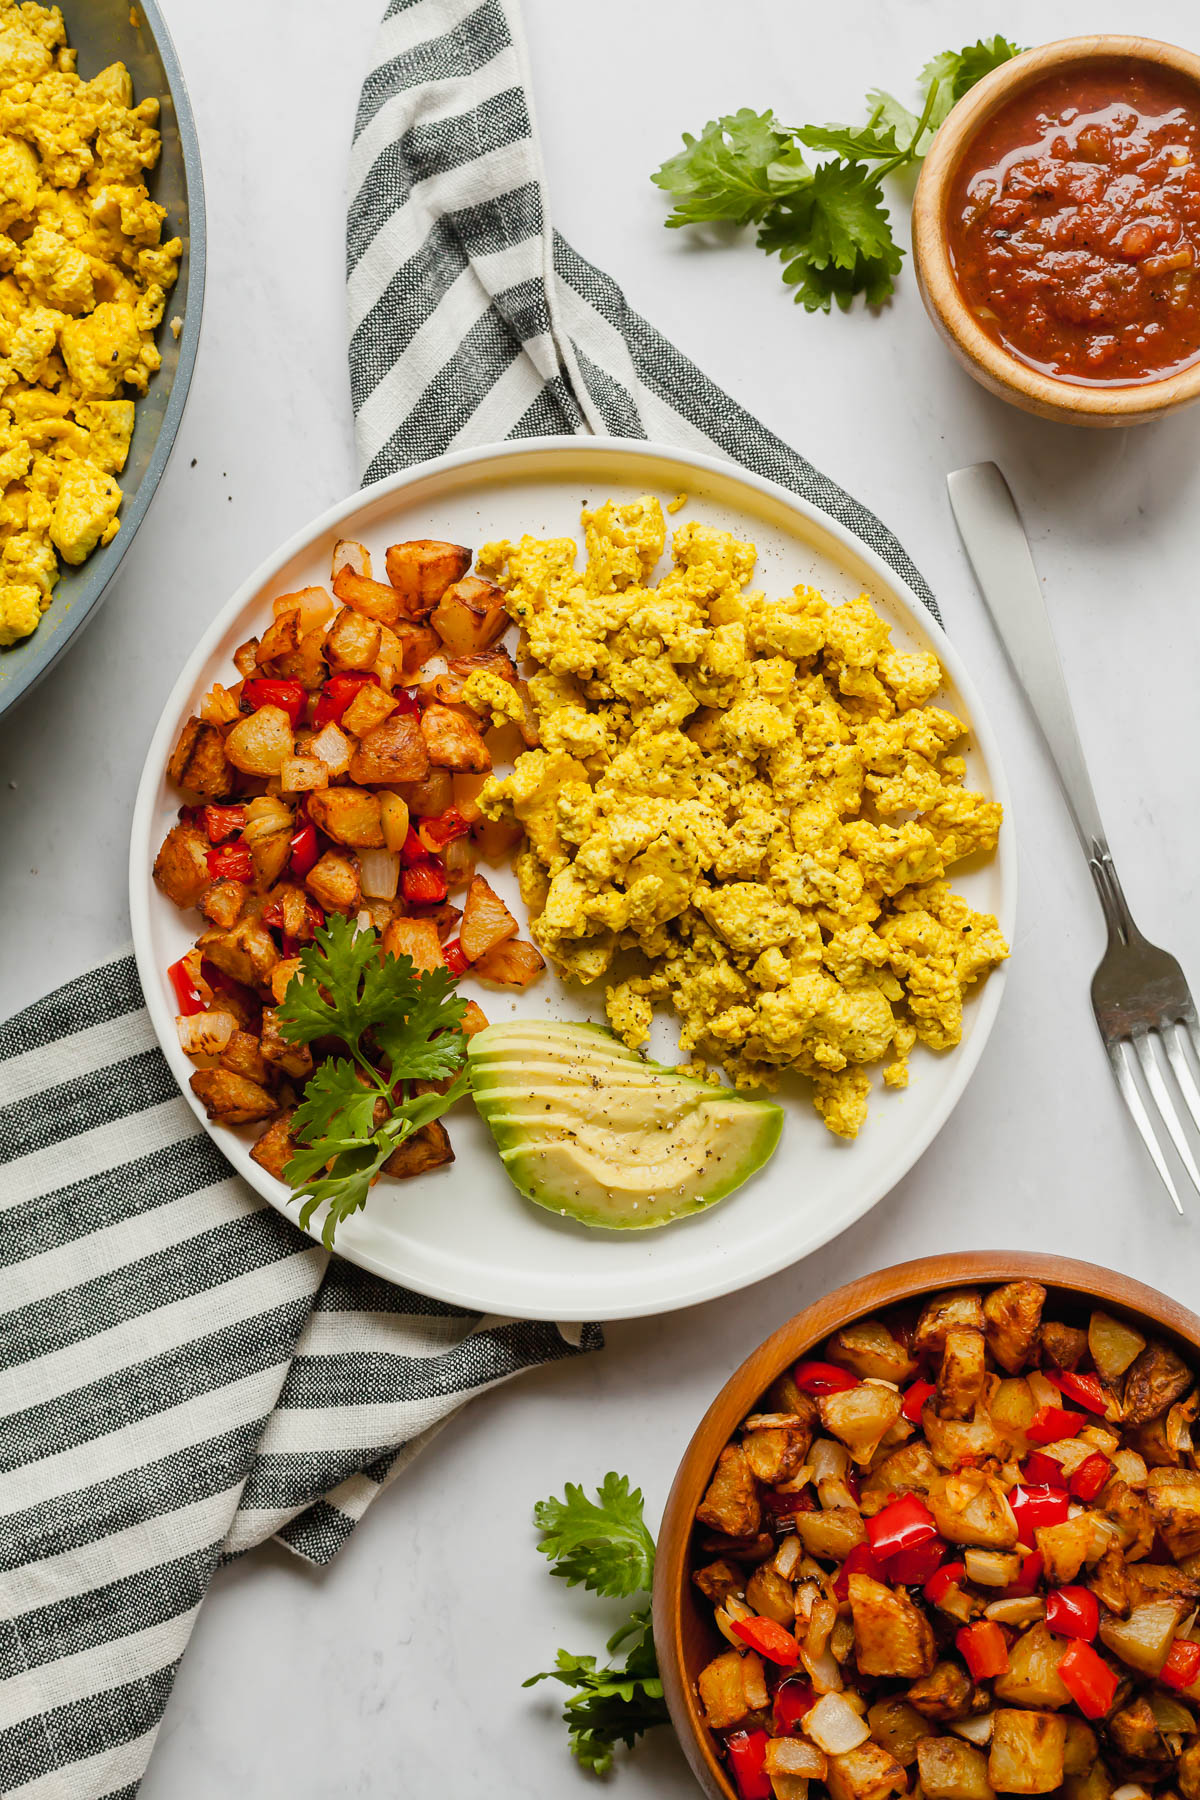 air fryer american fries on a white plate with scrambled tofu and avocado on a white table with a striped towel